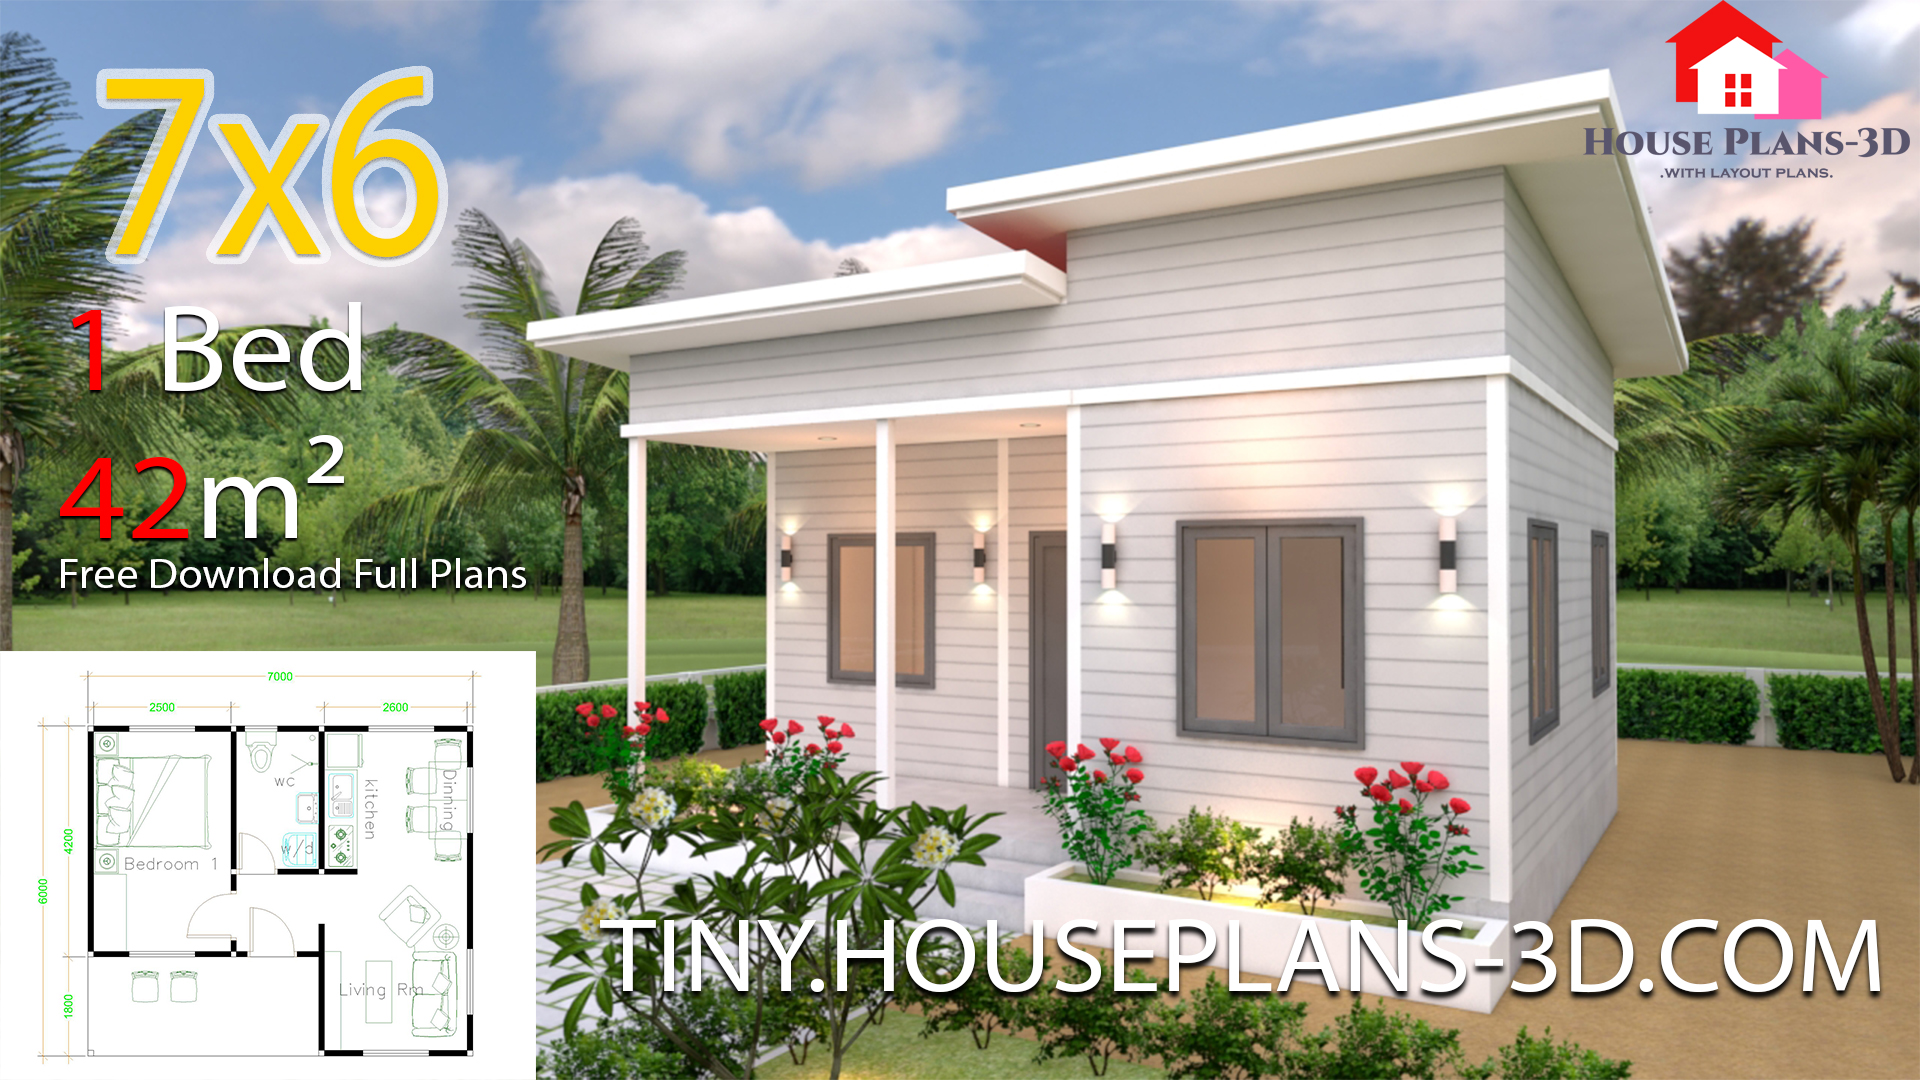 Tiny House Plans 7x6 With One Bedroom Shed Roof Tiny House Plans